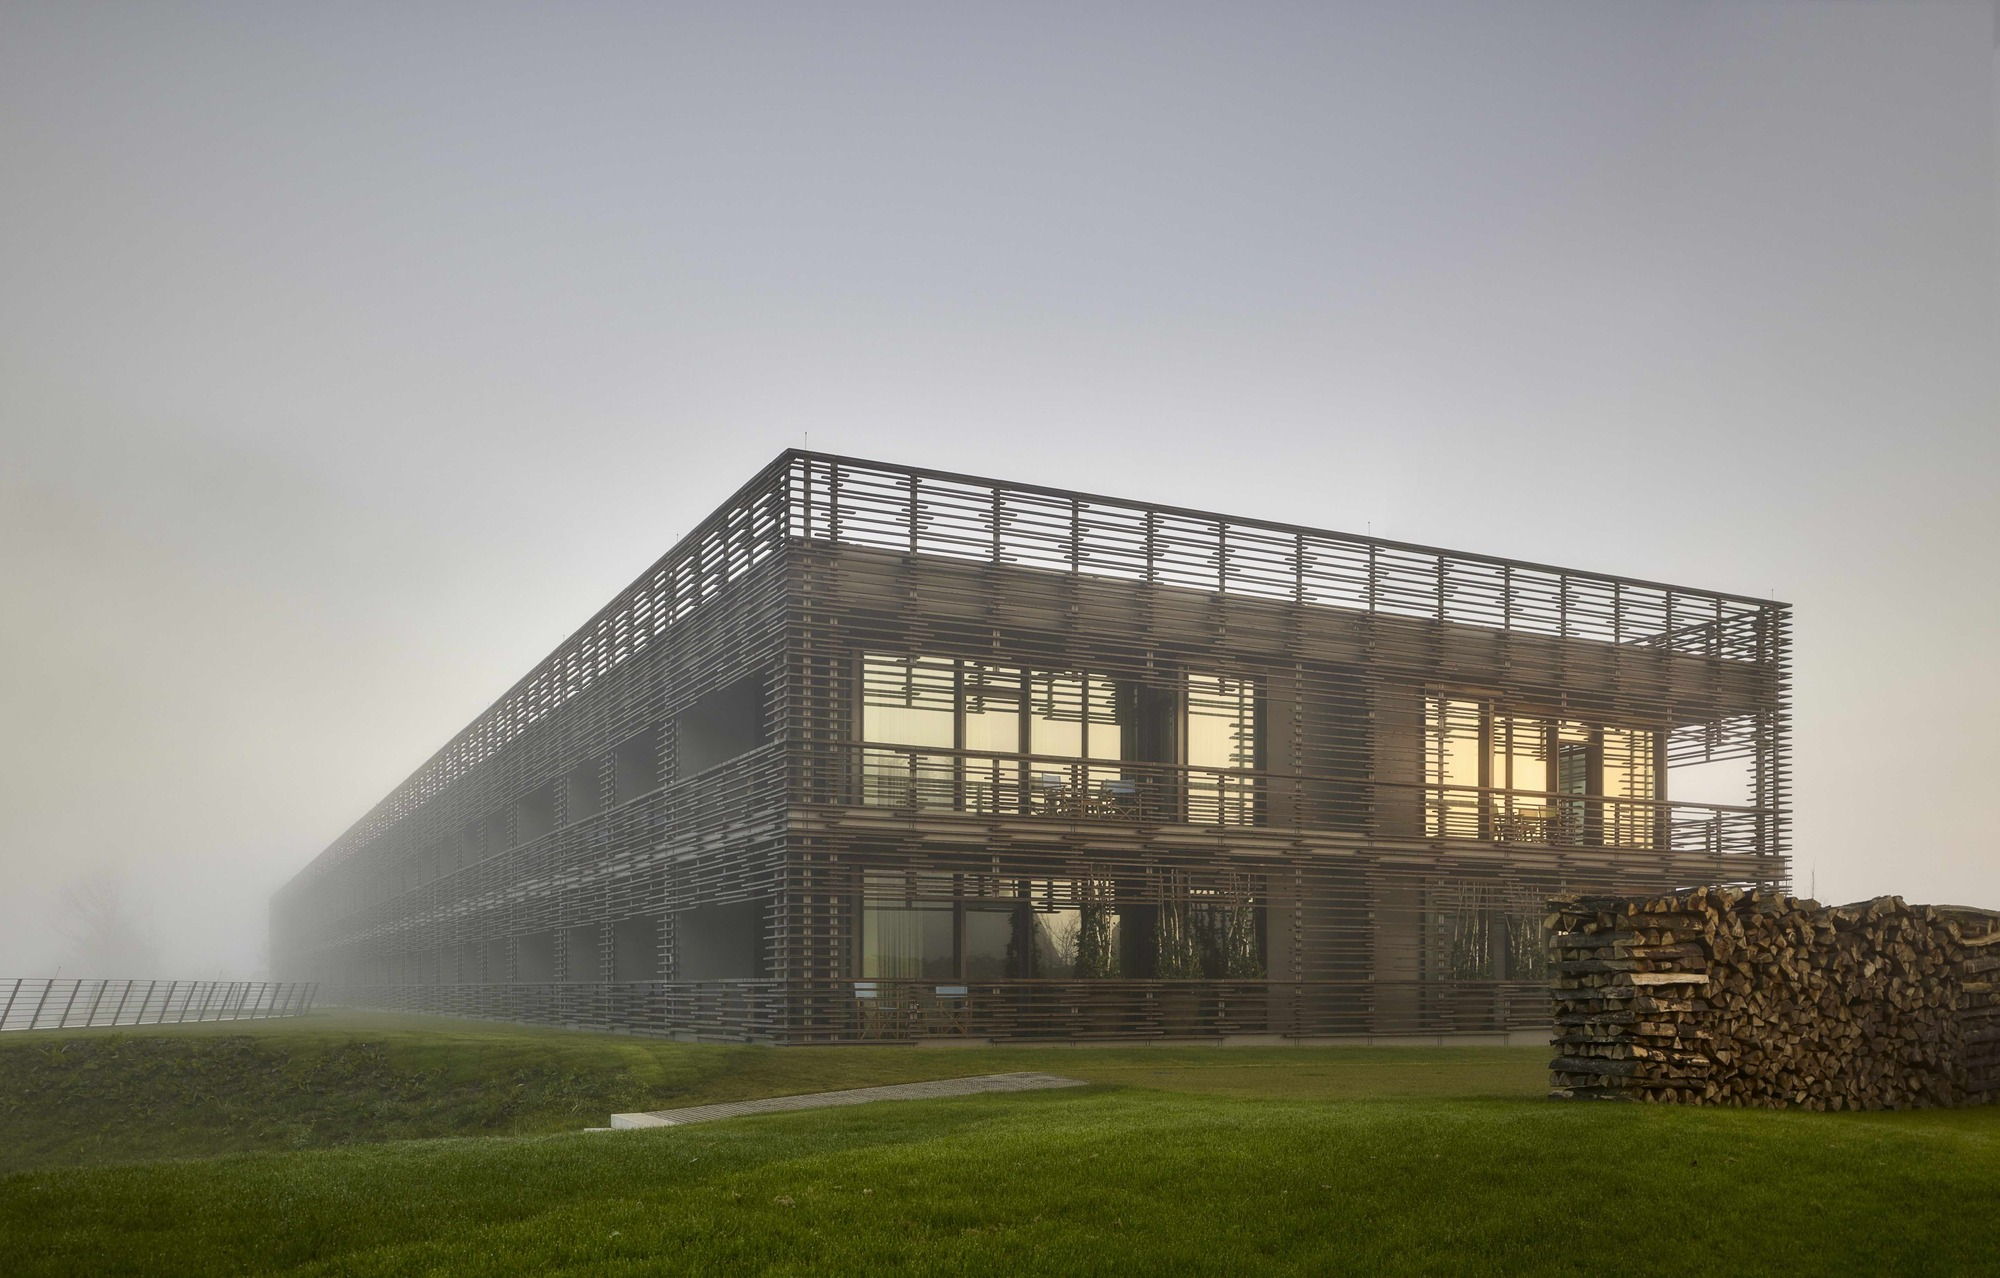 Hotels In Chicago >> Hotel & Spa Seezeitlodge / Graft Architects | ArchDaily